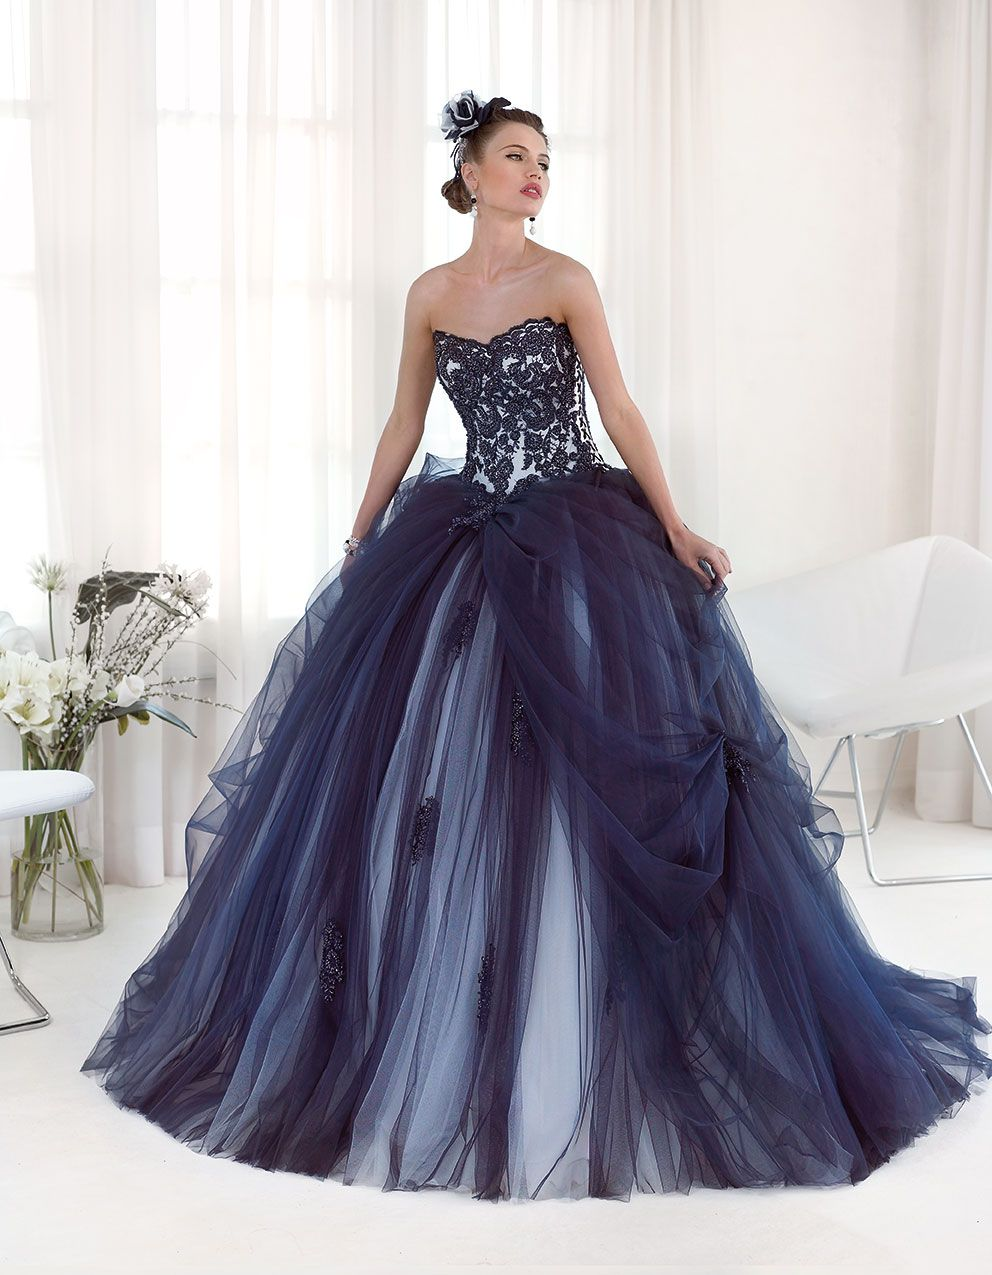 17 Best images about blue wedding dress on Pinterest - Beaded ...